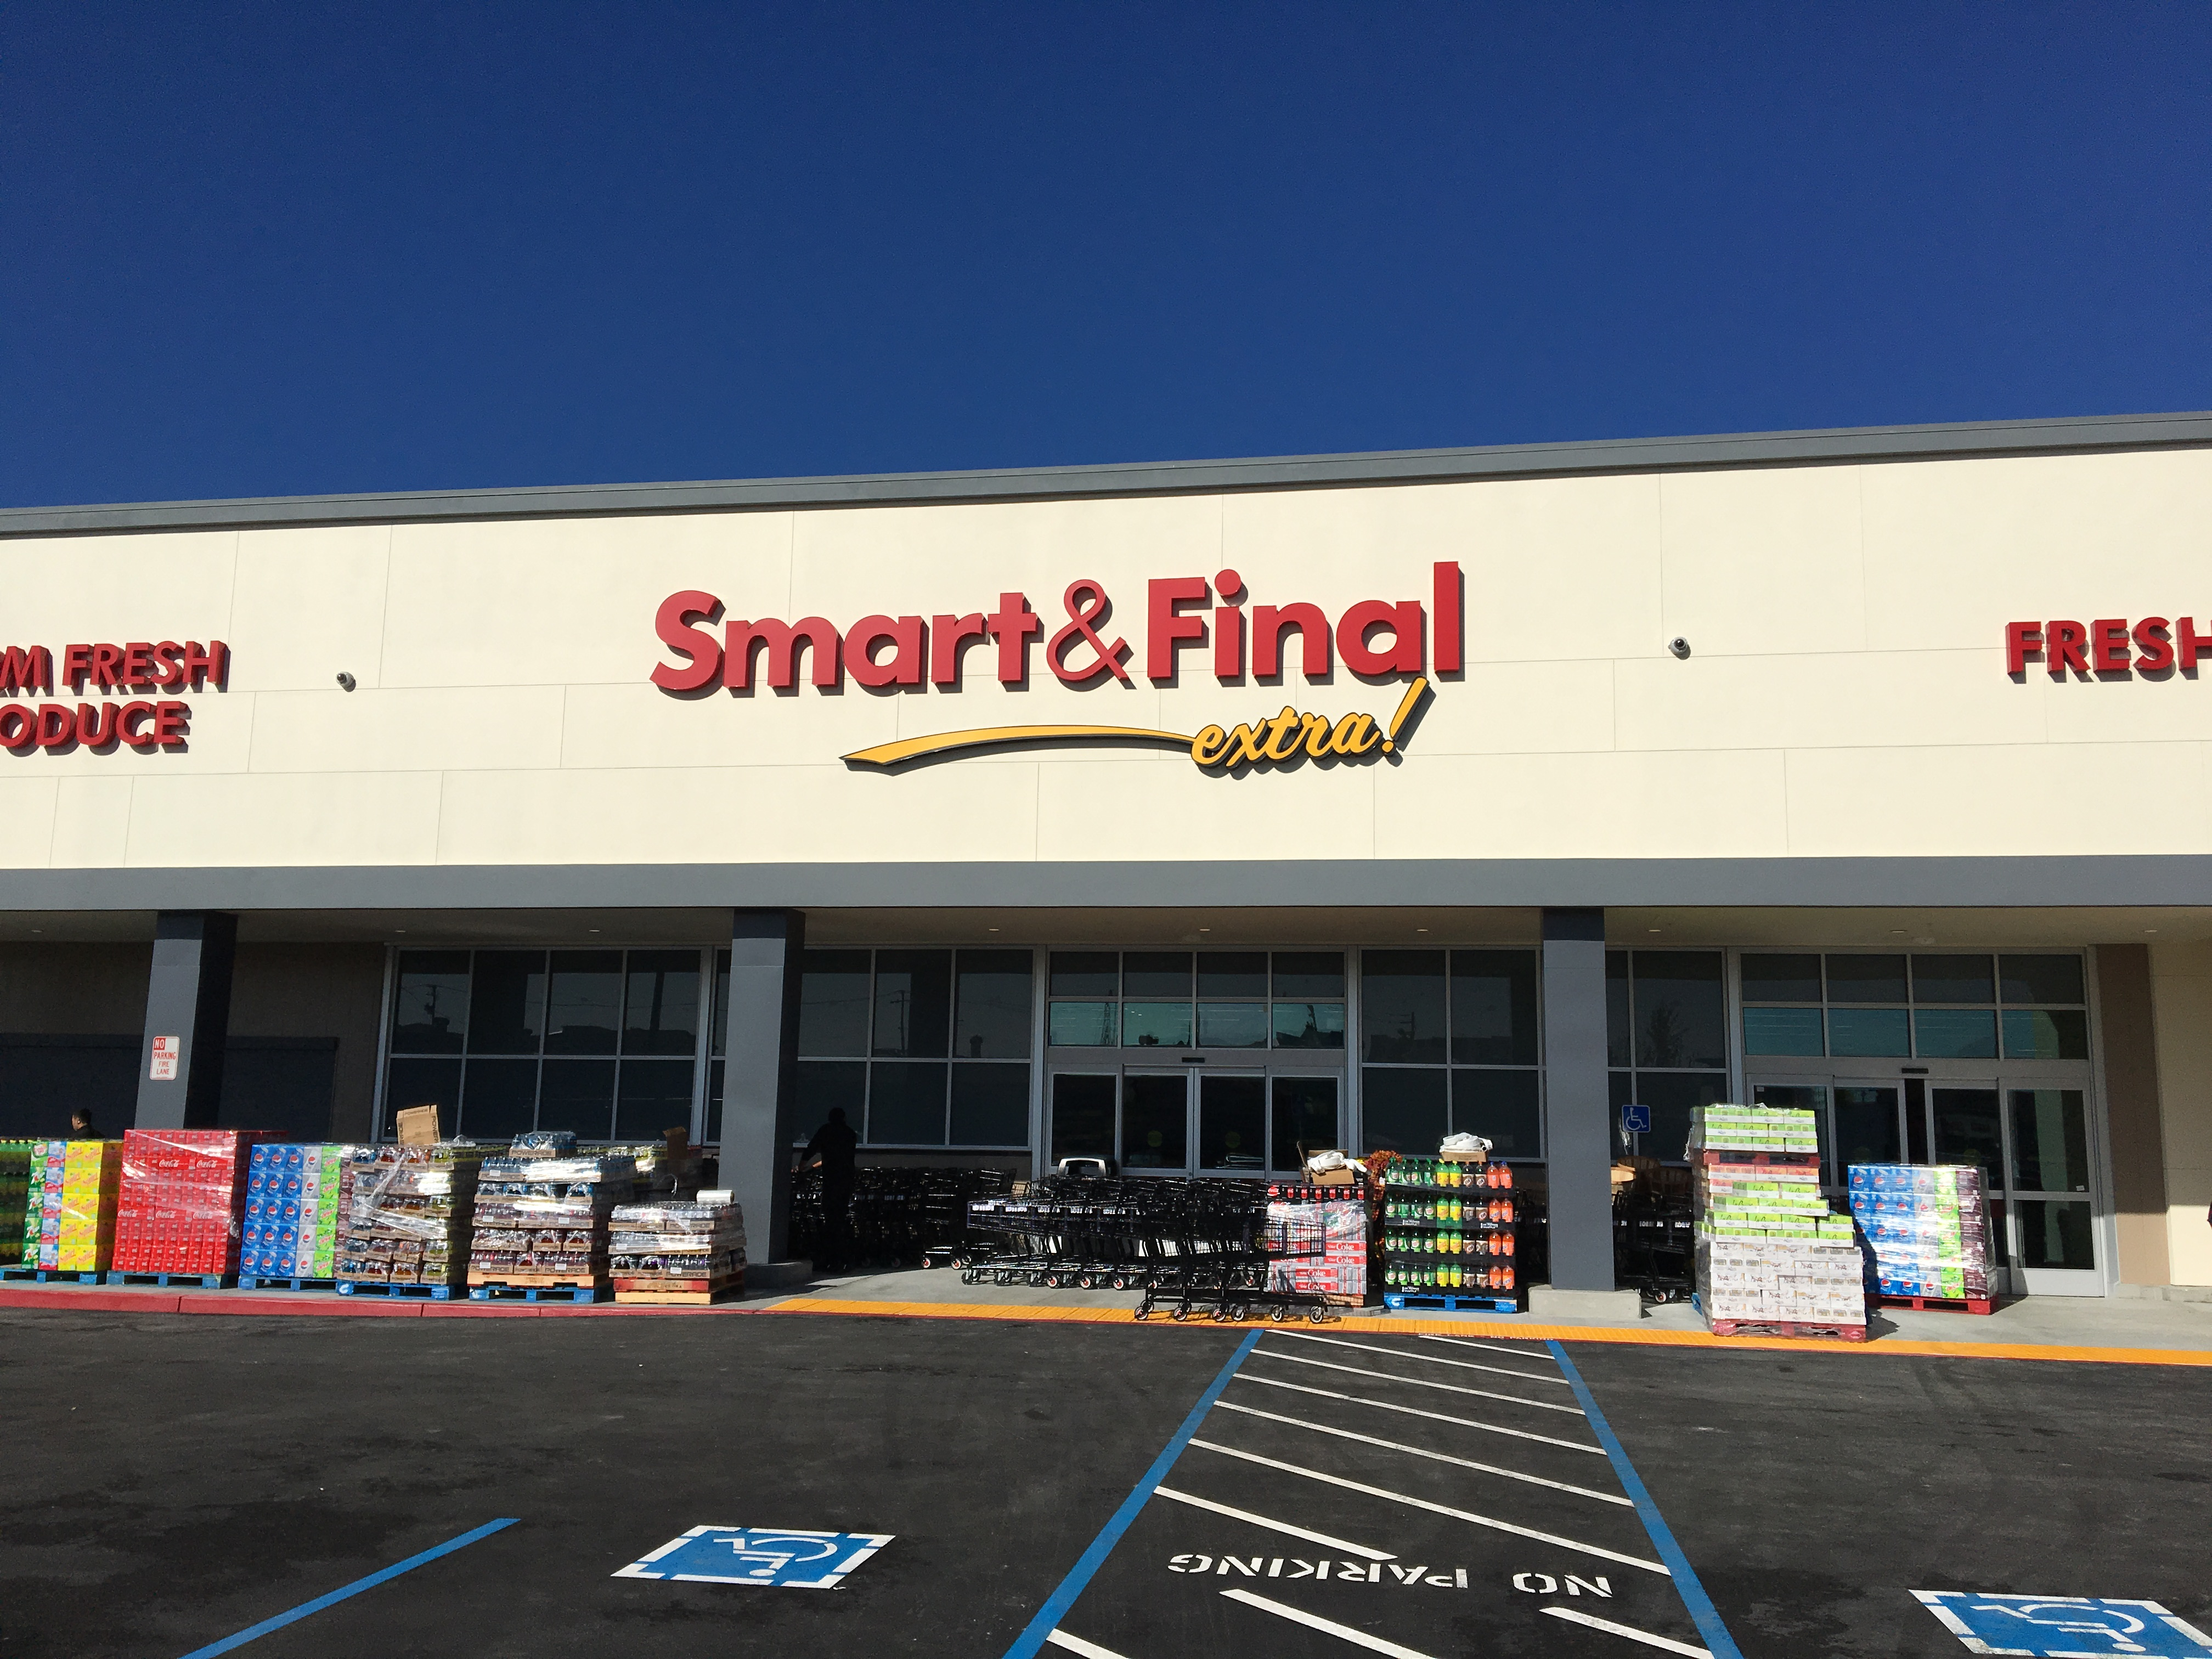 Smart & Final Store Front - Grocery Store in San Jose, CA